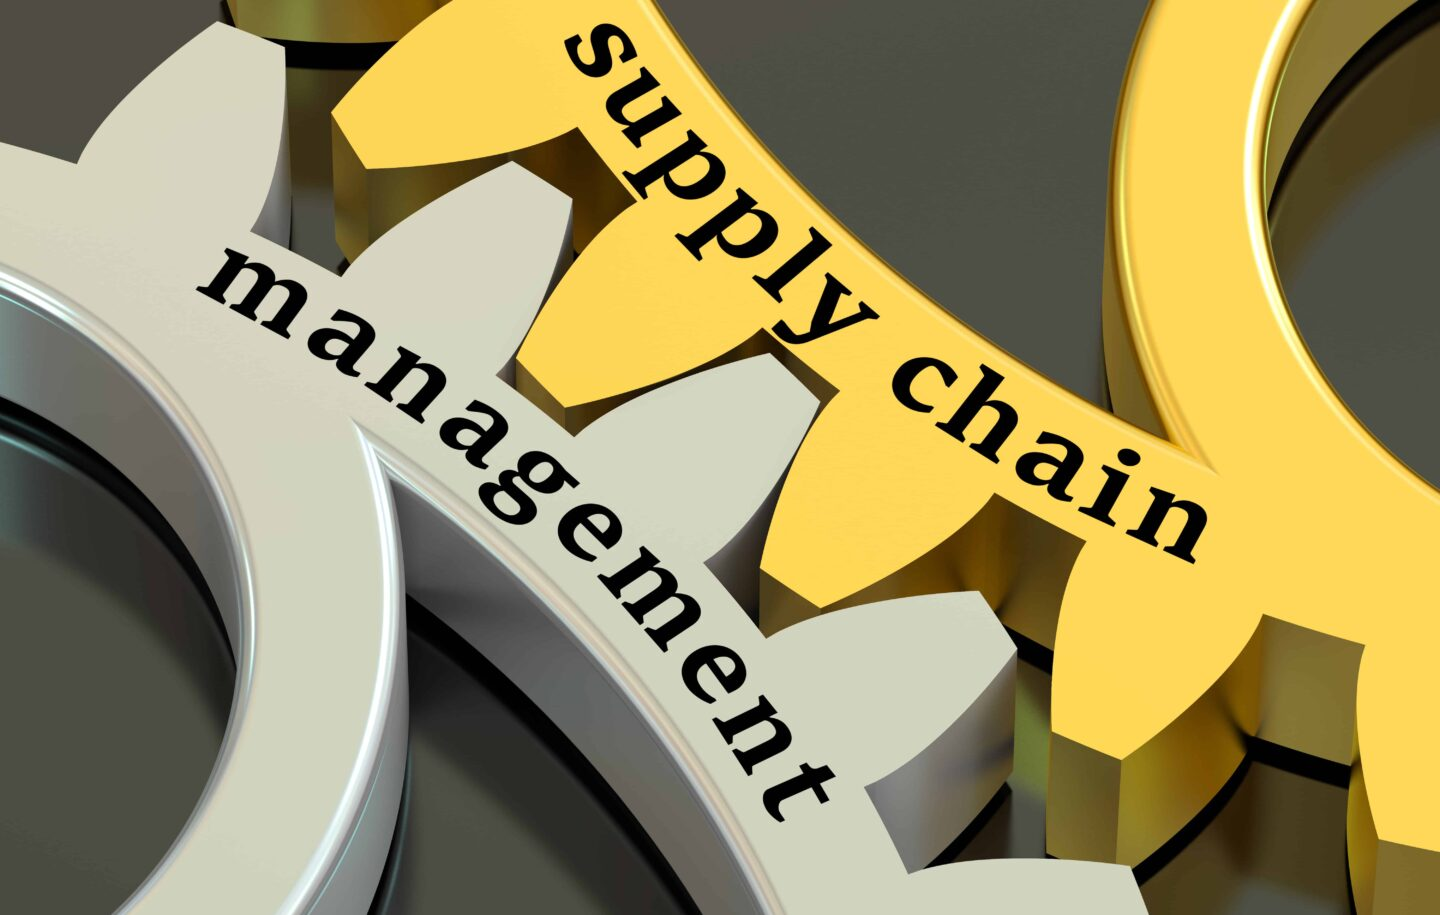 Interlocking gear illustration depicts the best high mix low volume supply chain strategy